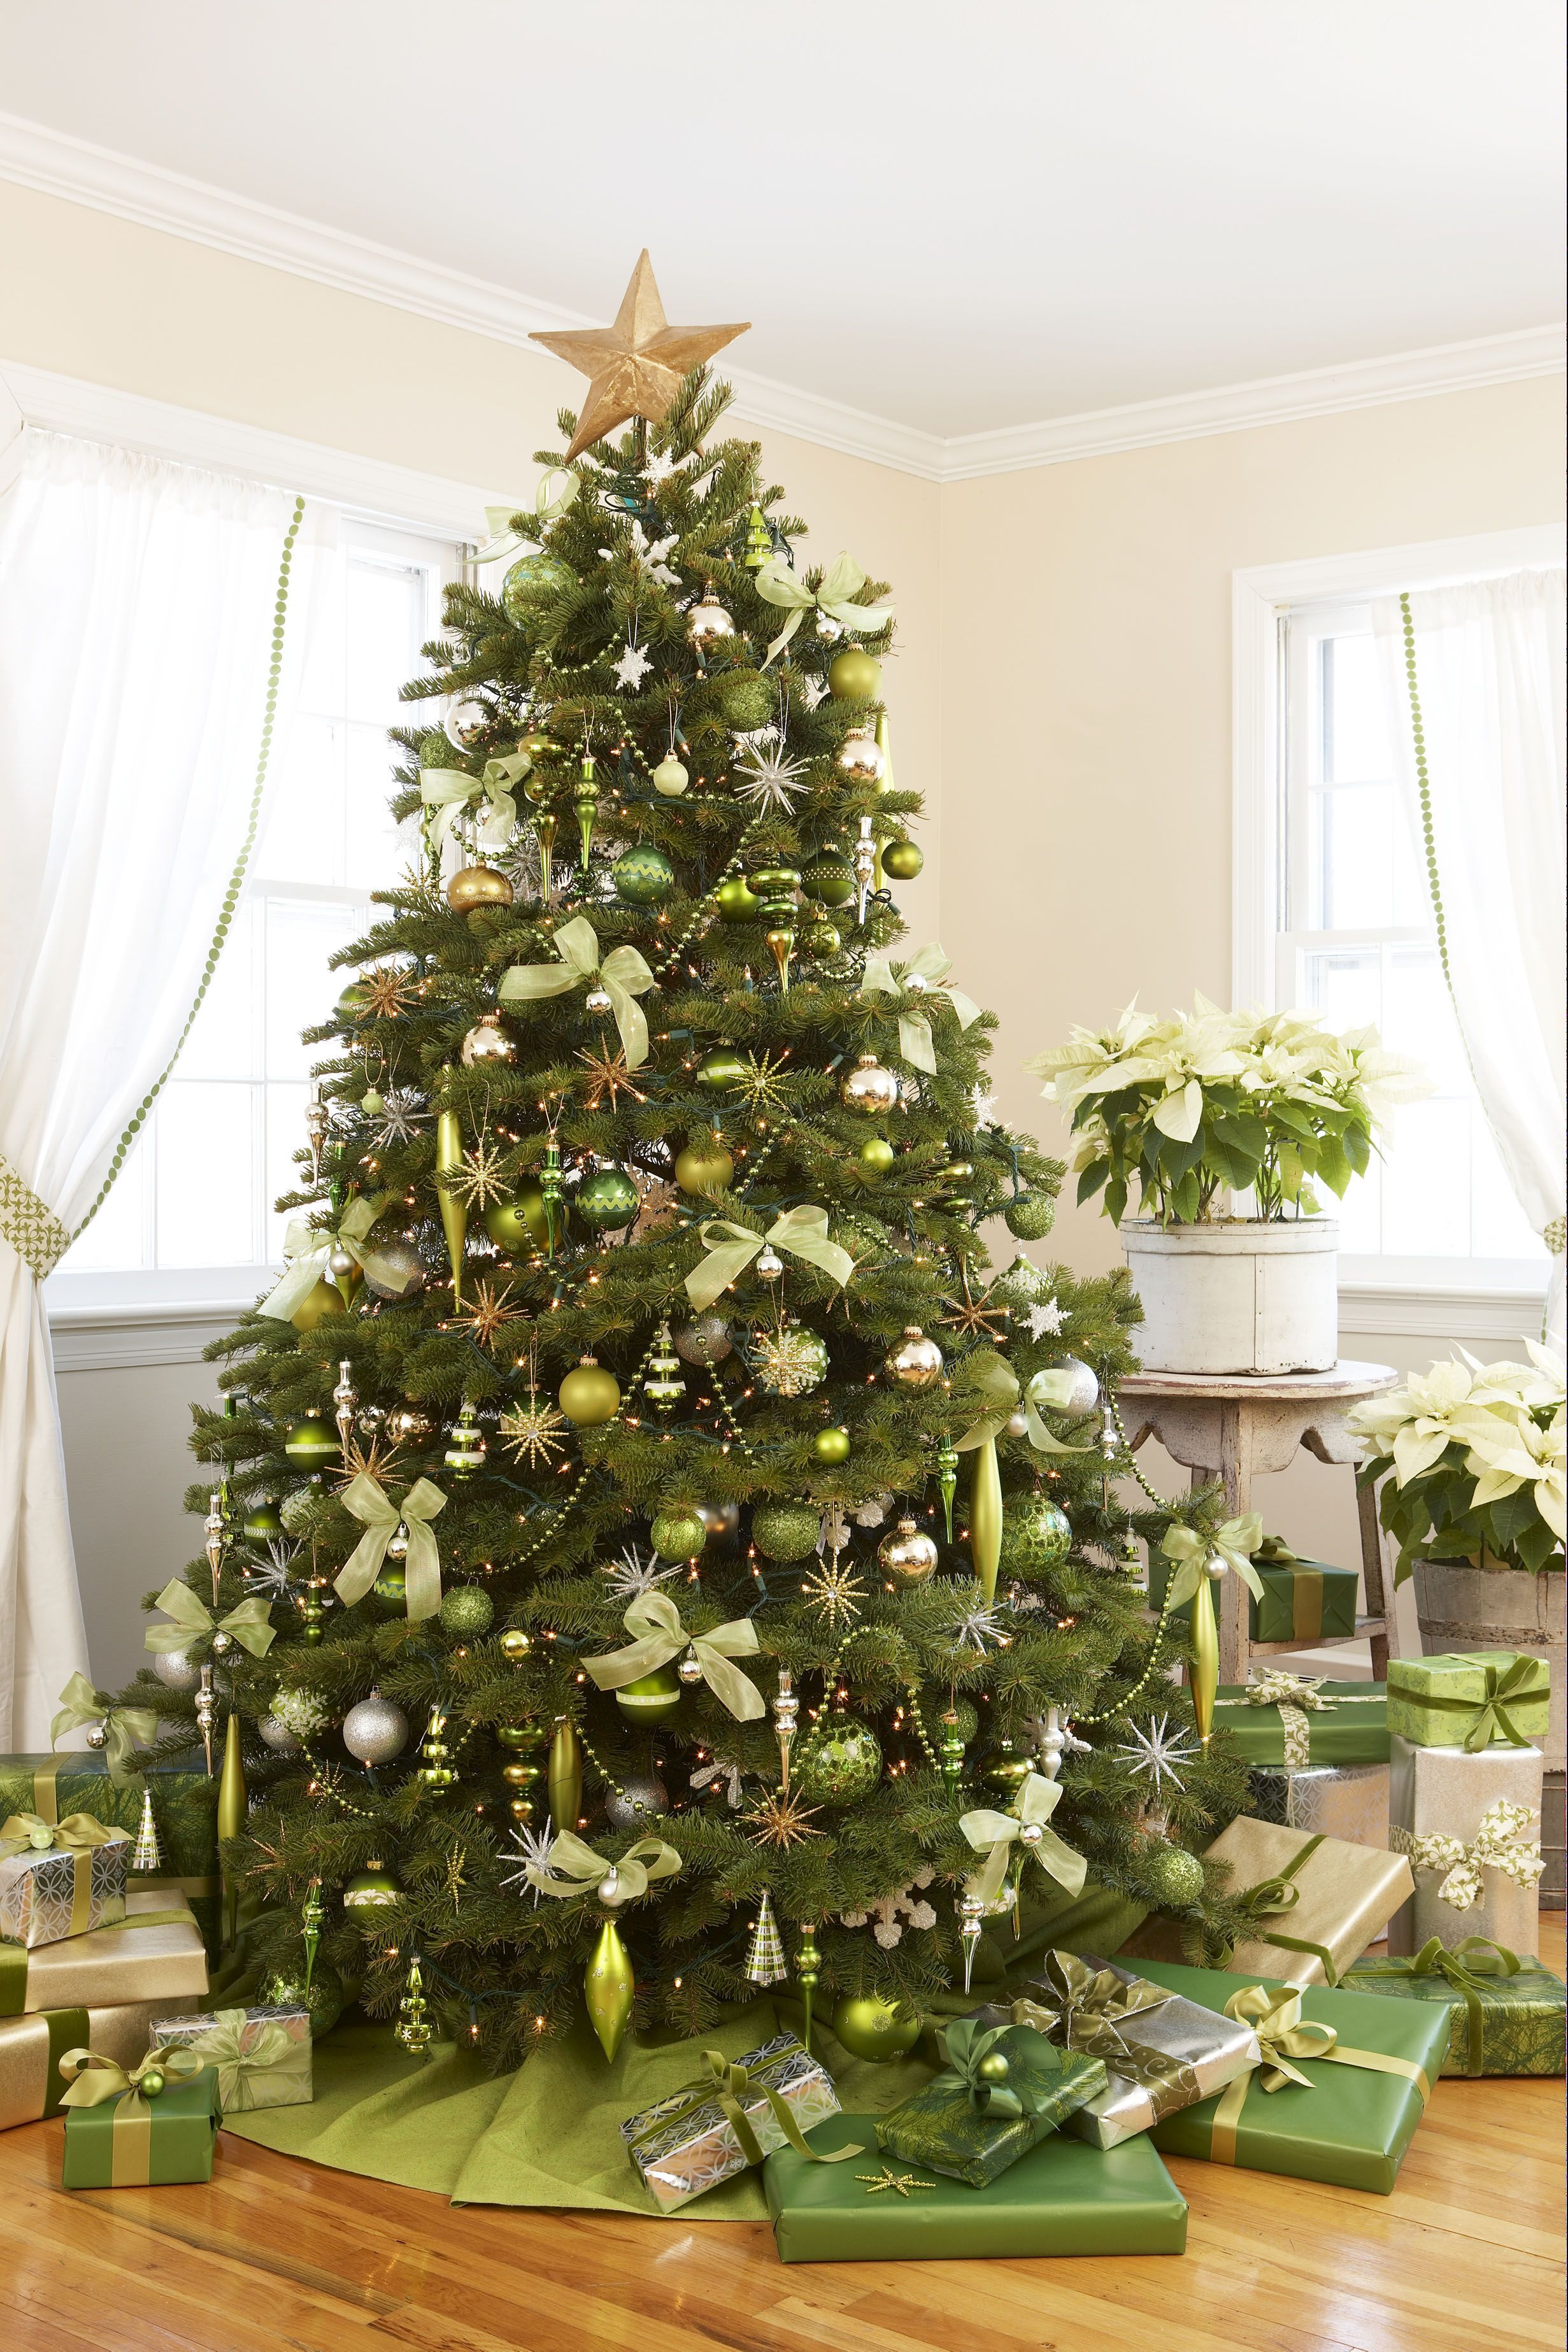 green christmas decorations ideas for lime green christmas decorations - Green Christmas Decorations